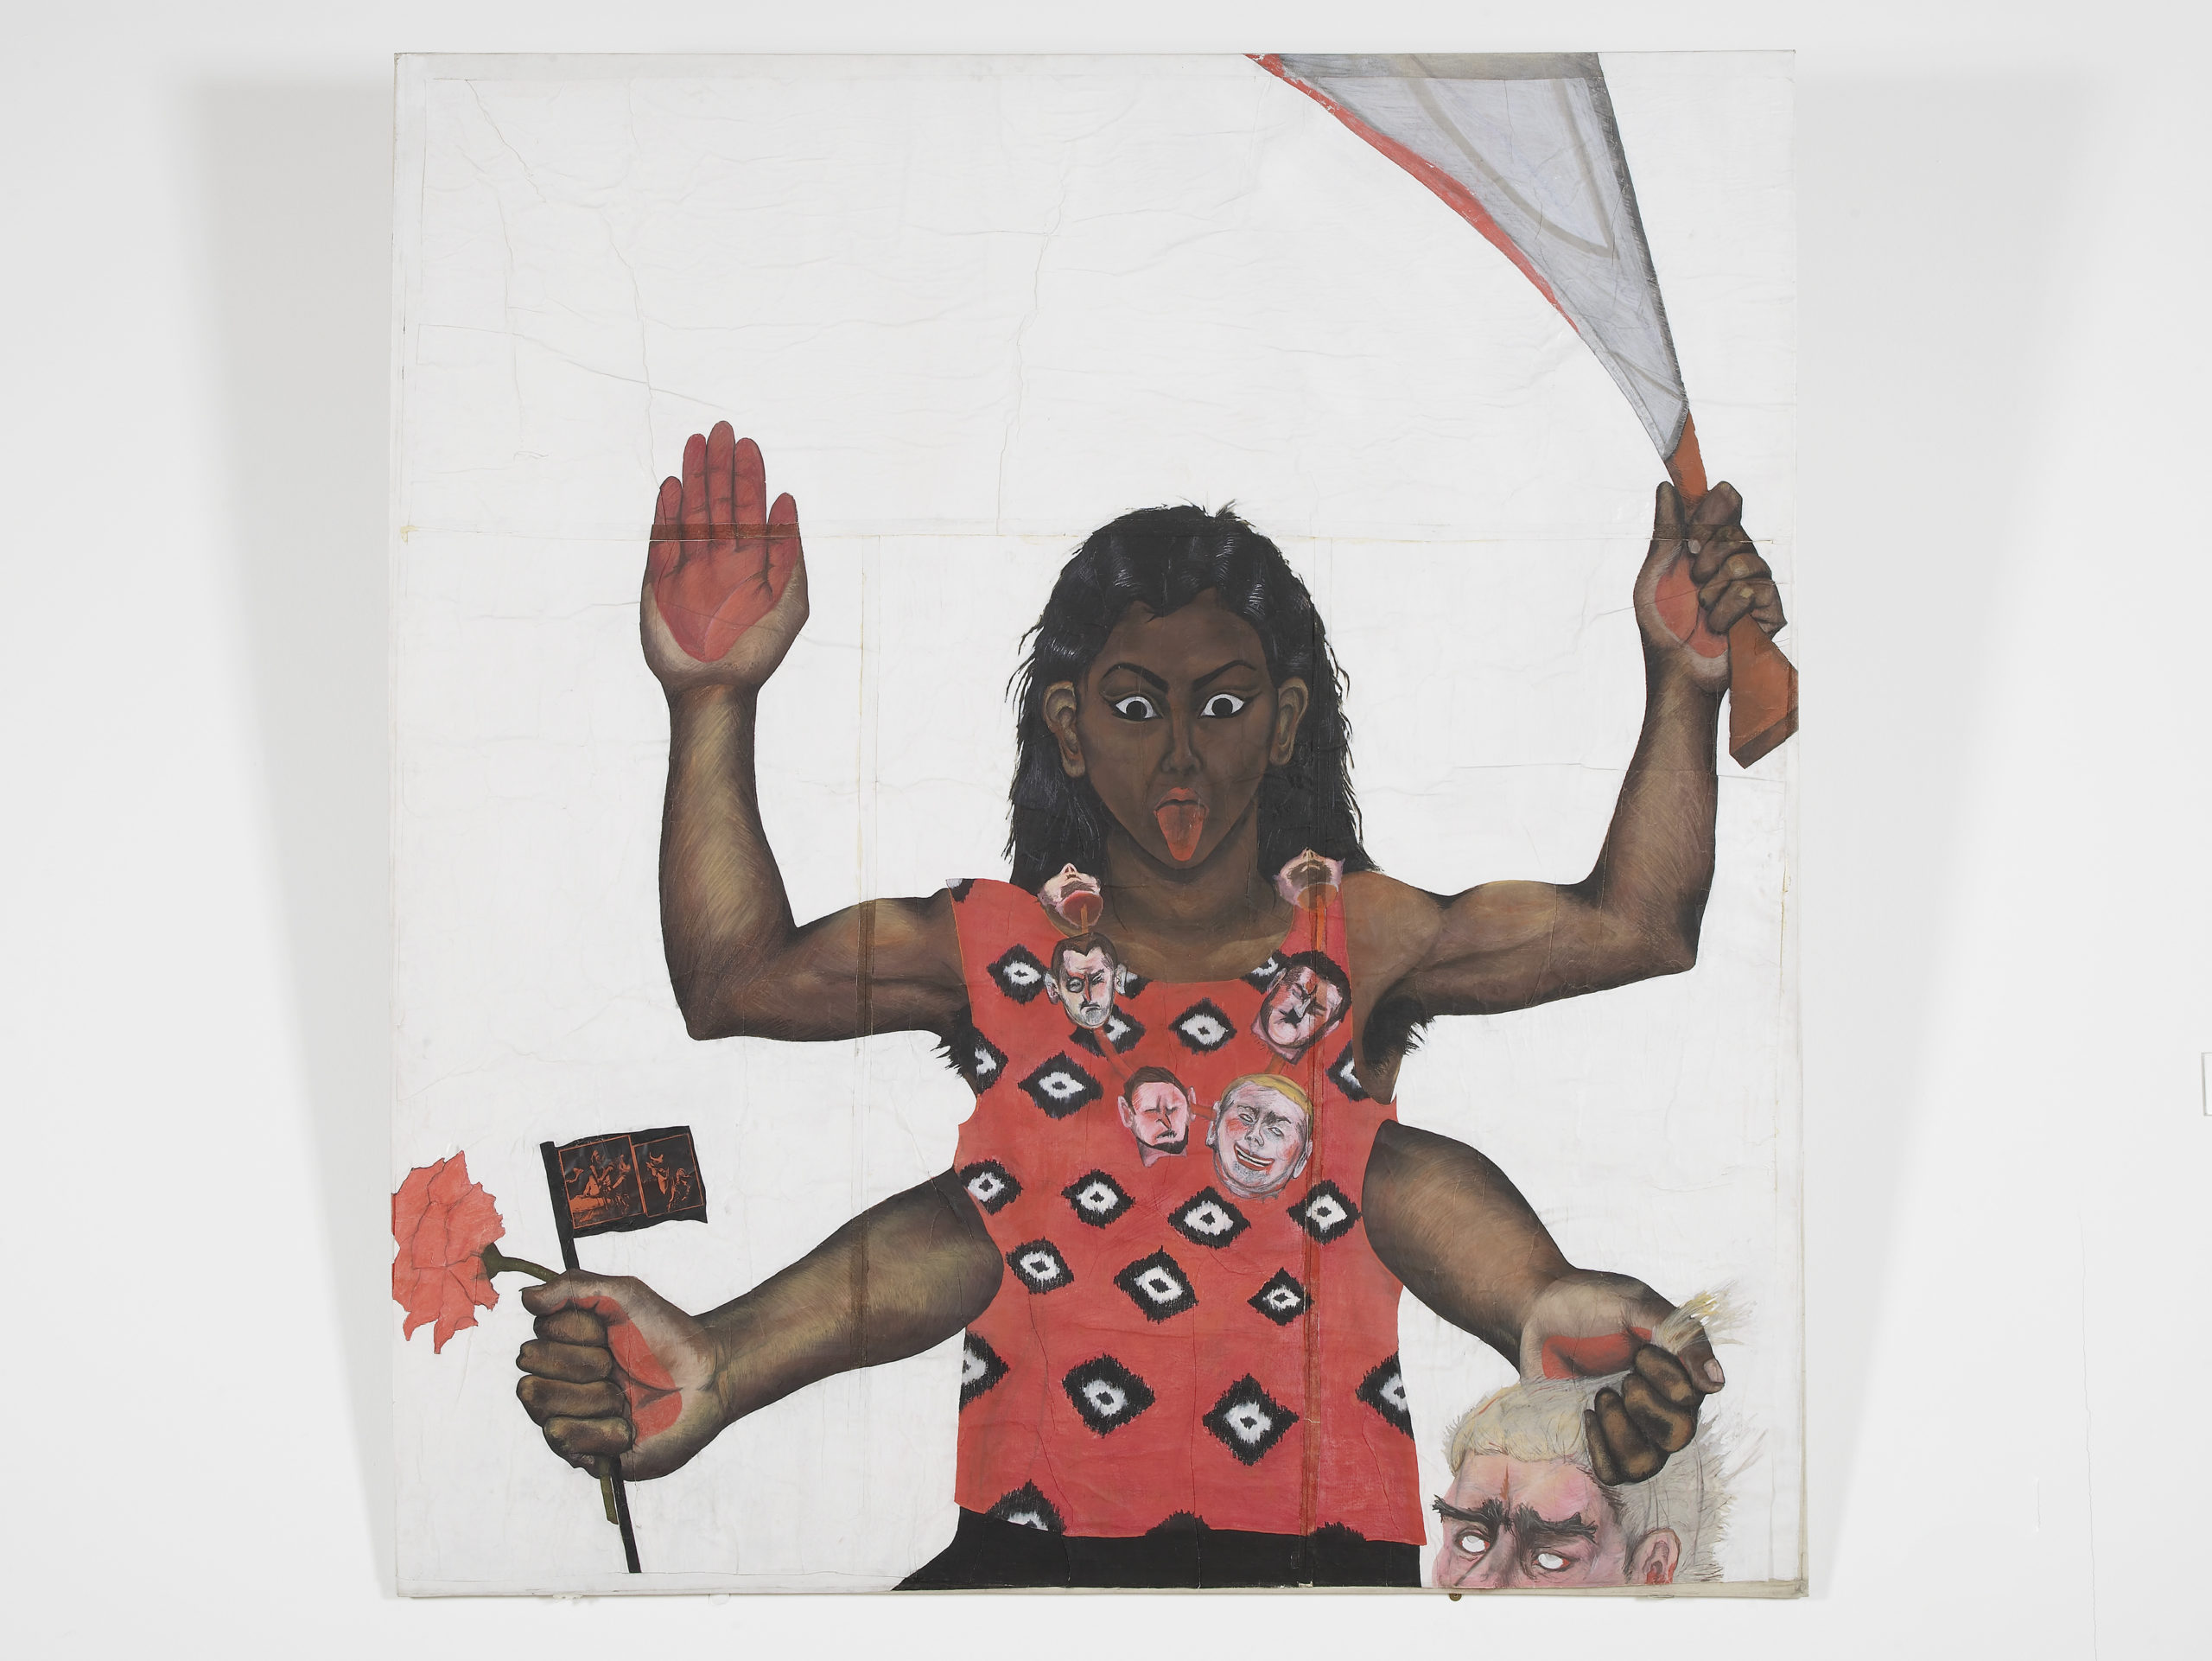 Sutapa Biswas, Housewives with Steak-knives, 1984-85. © Sutapa Biswas. All rights reserved, DACS/Artimage 2020. Photo by Andy Keate